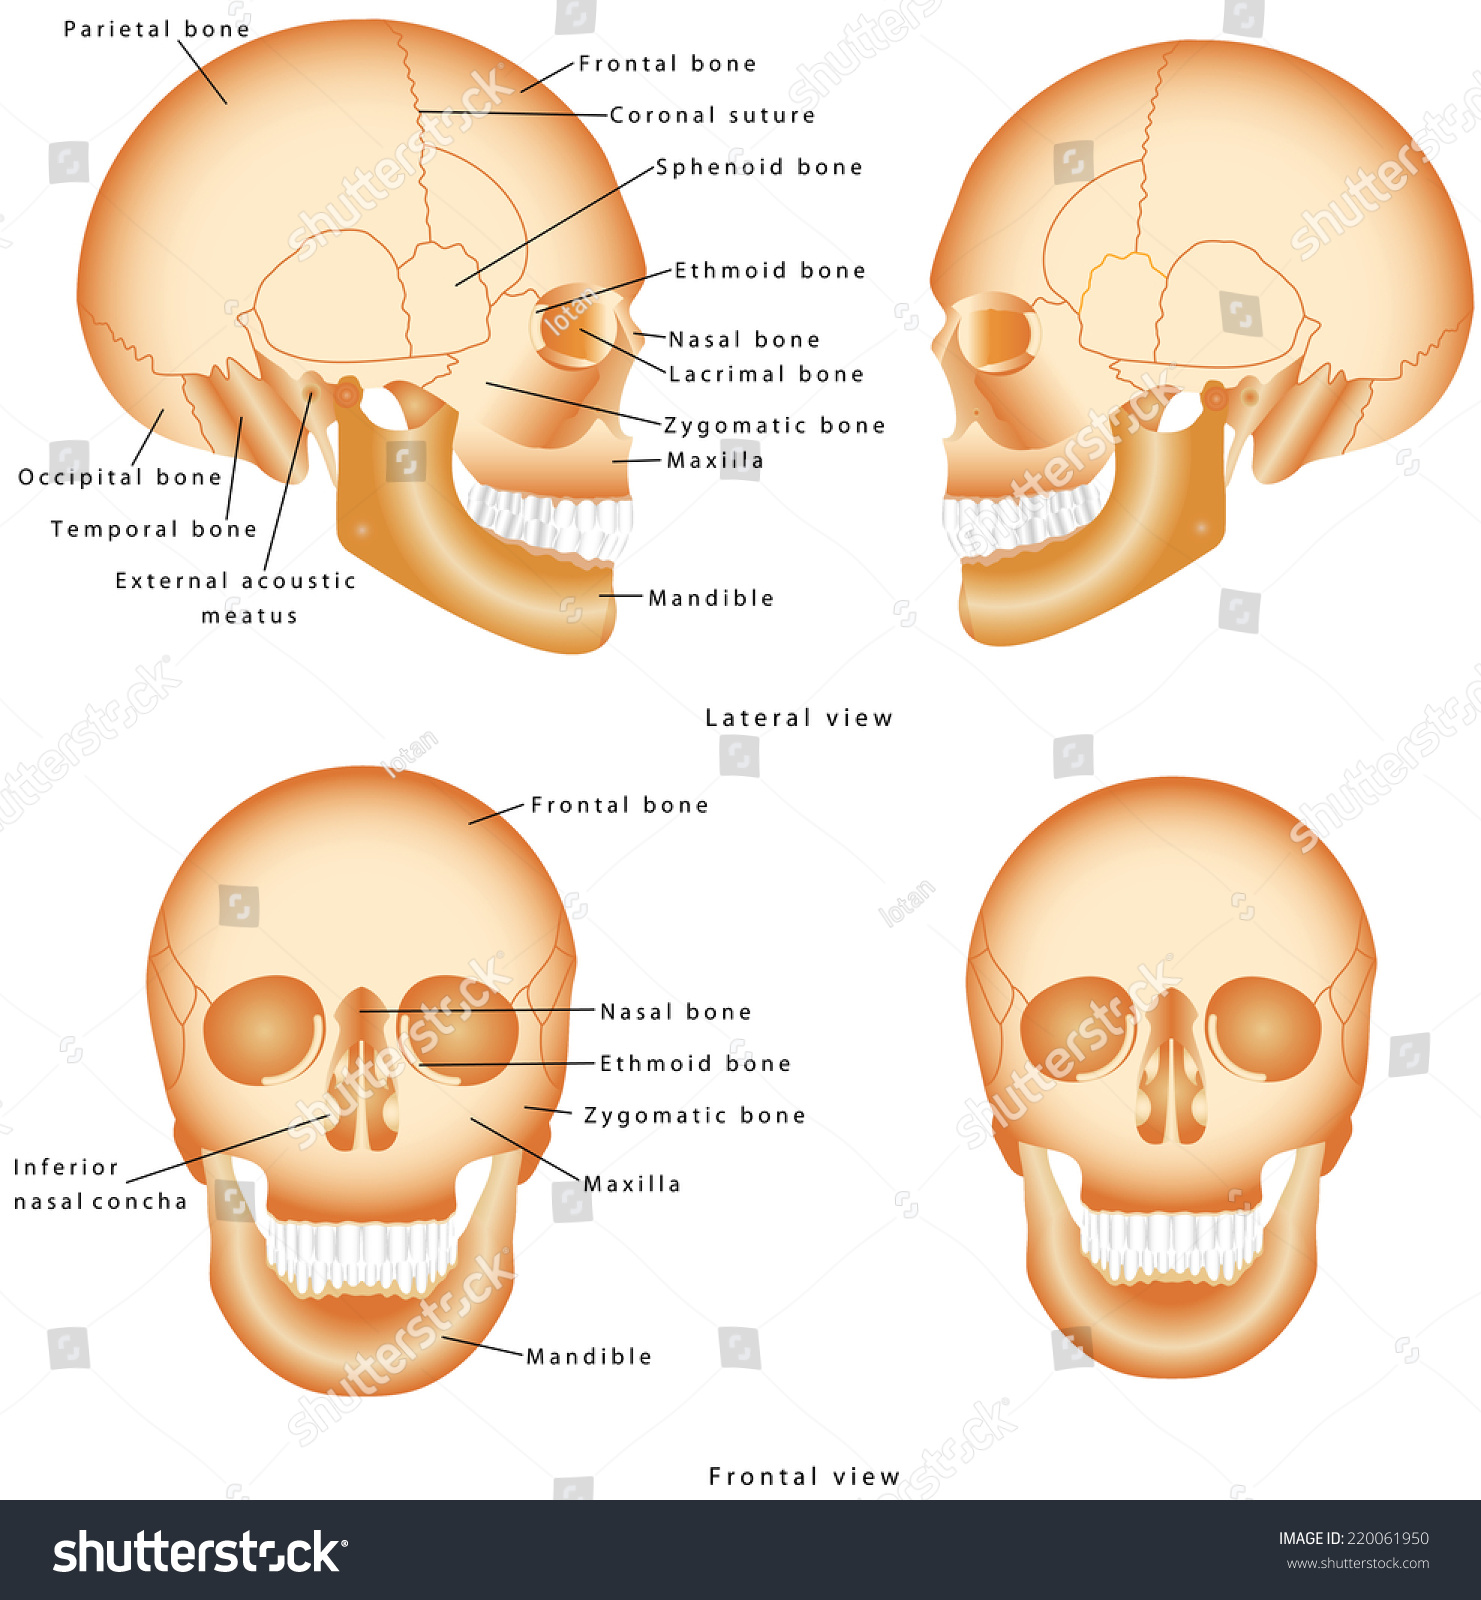 hight resolution of human skull structure skull anatomy labeling medical model of a human skull isolated against a white background lateral and frontal view of human skull